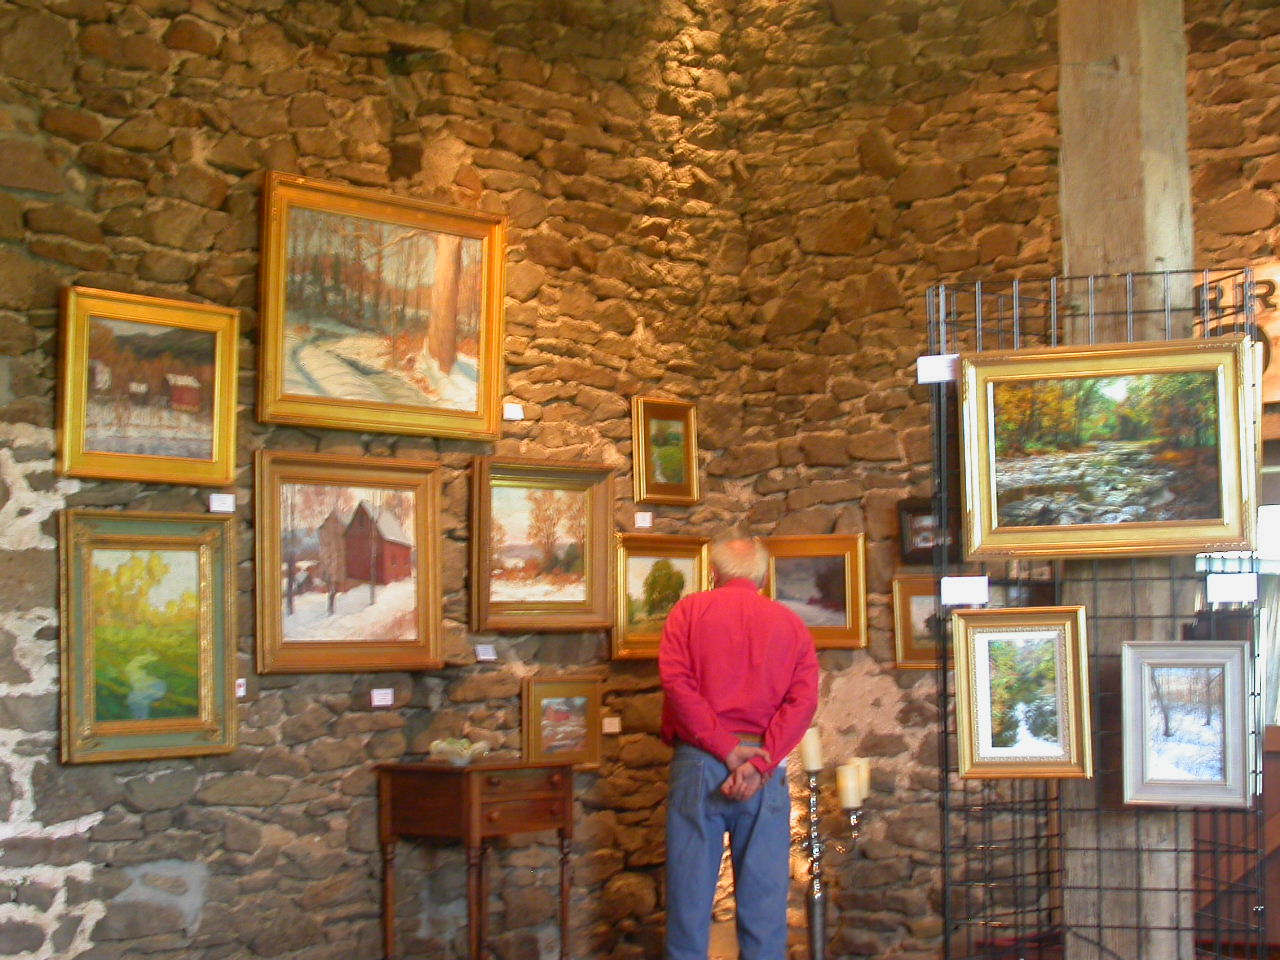 Chapman Gallery Traditional Artist Of Bucks County At